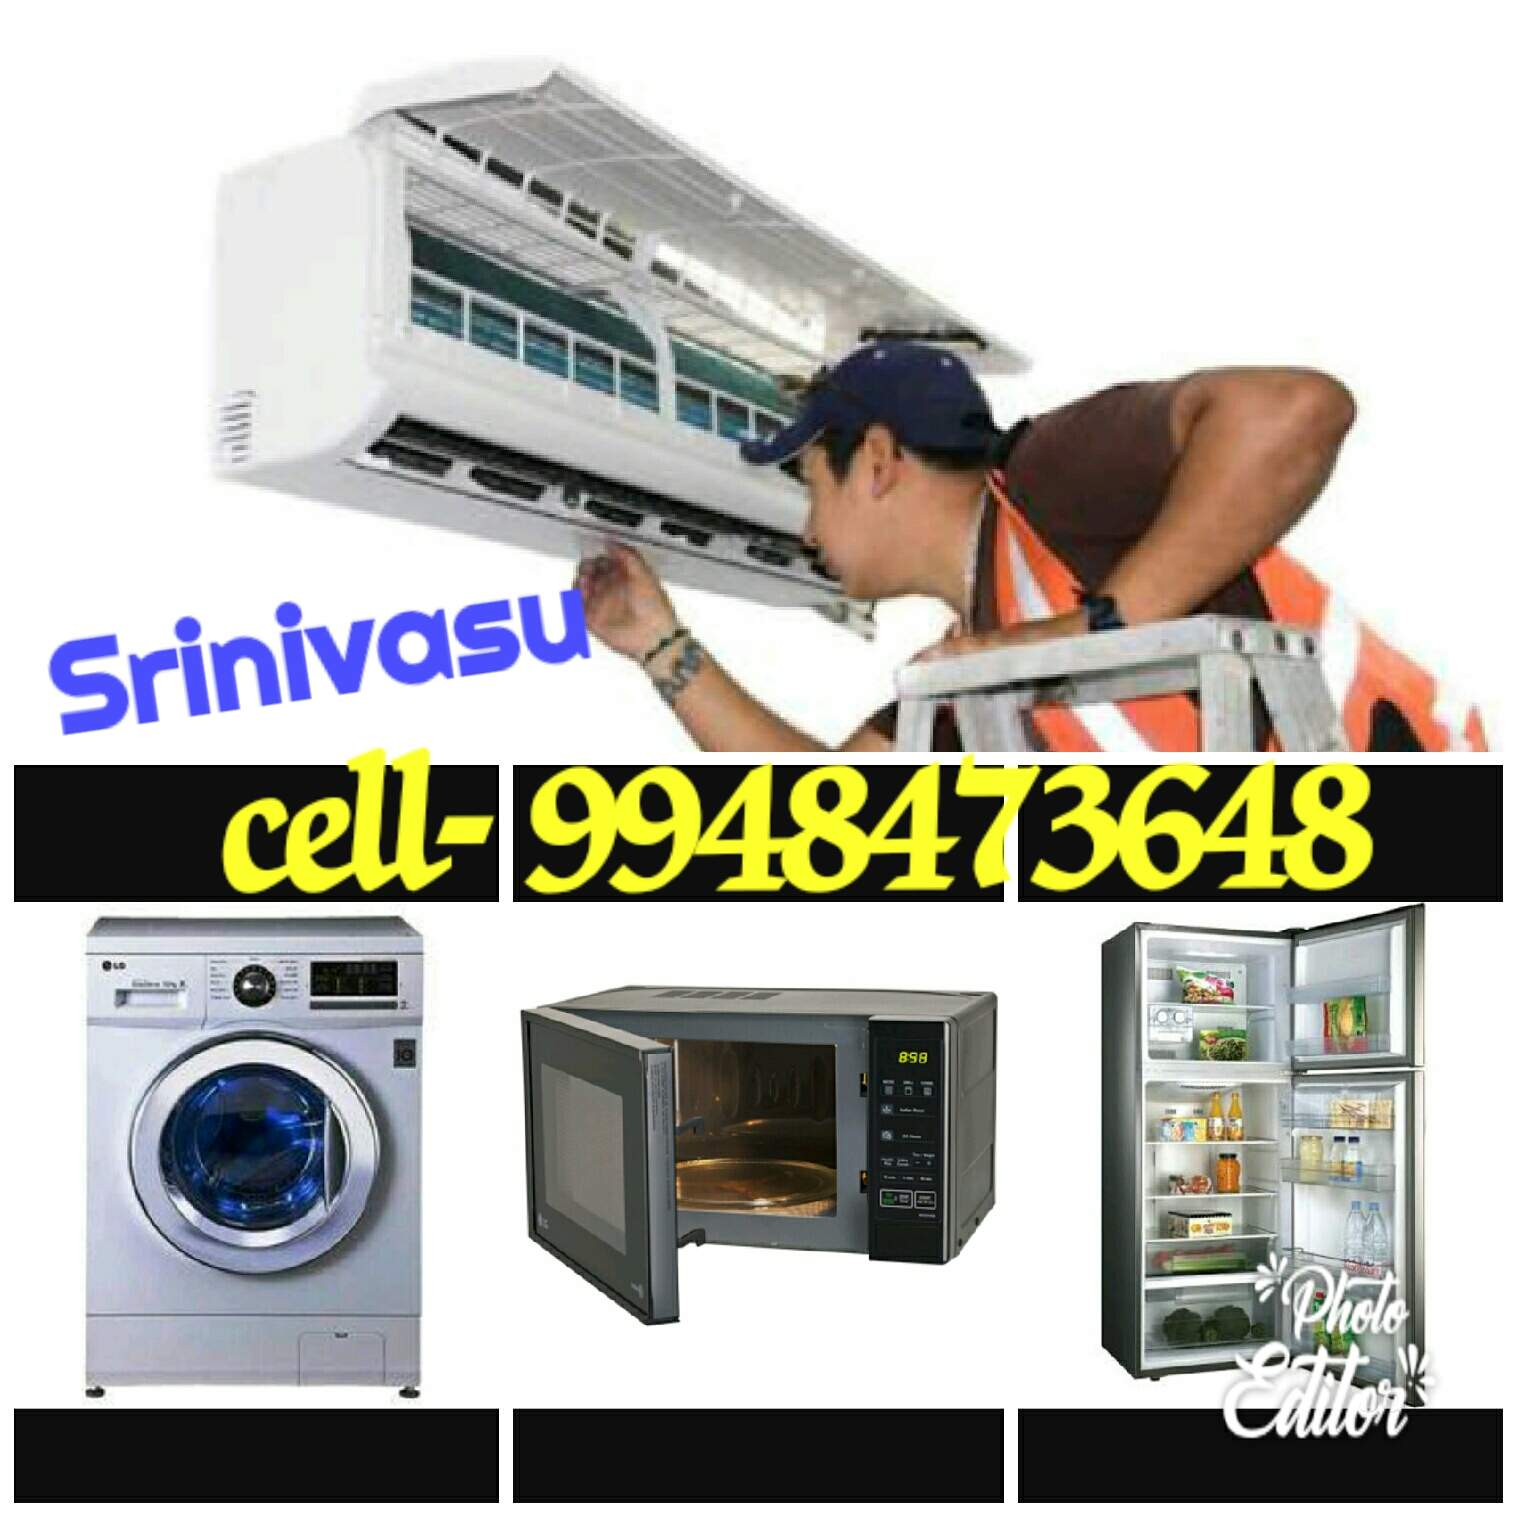 Top Washing Machine Control Card Repair & Services in